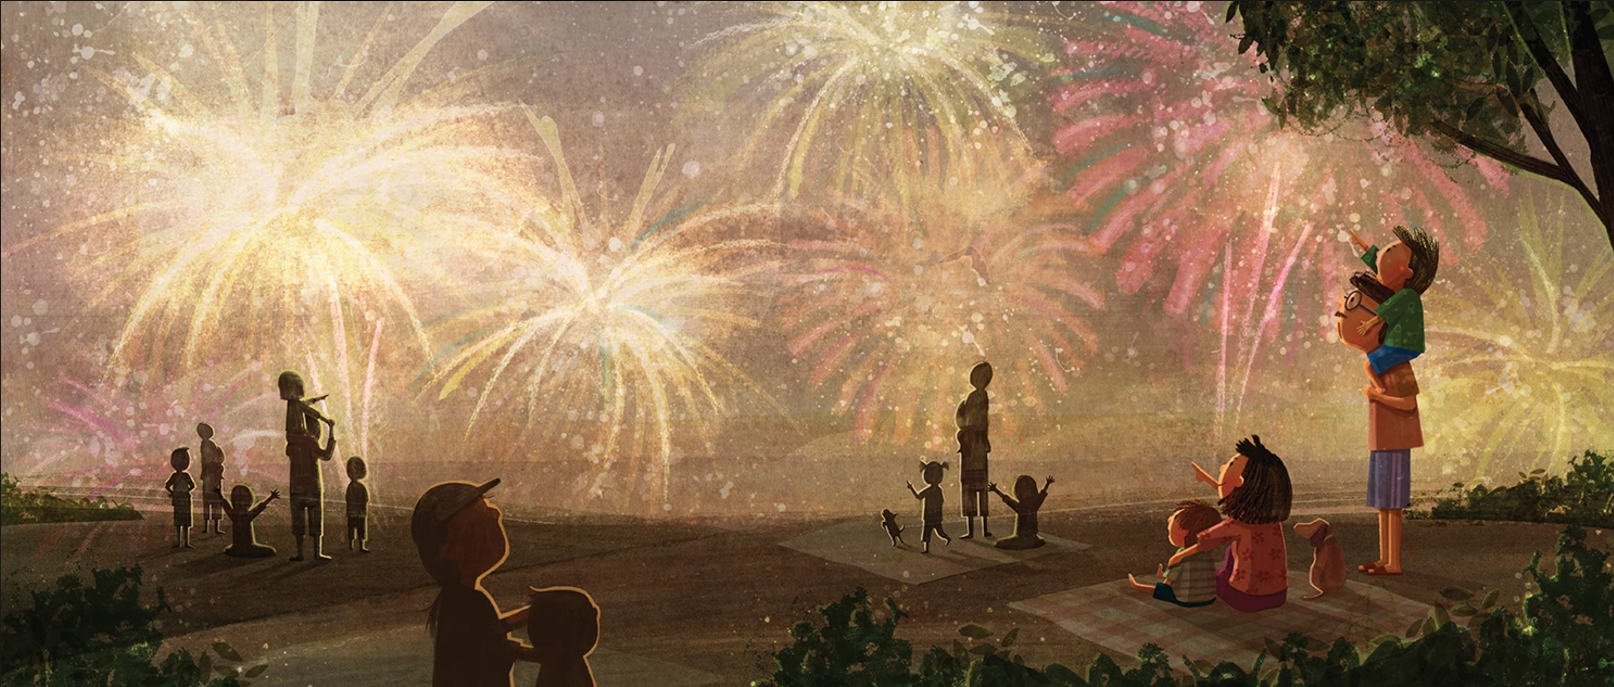 celebrate-picture-books-picture-book-review-and-then-comes-summer-fireworks